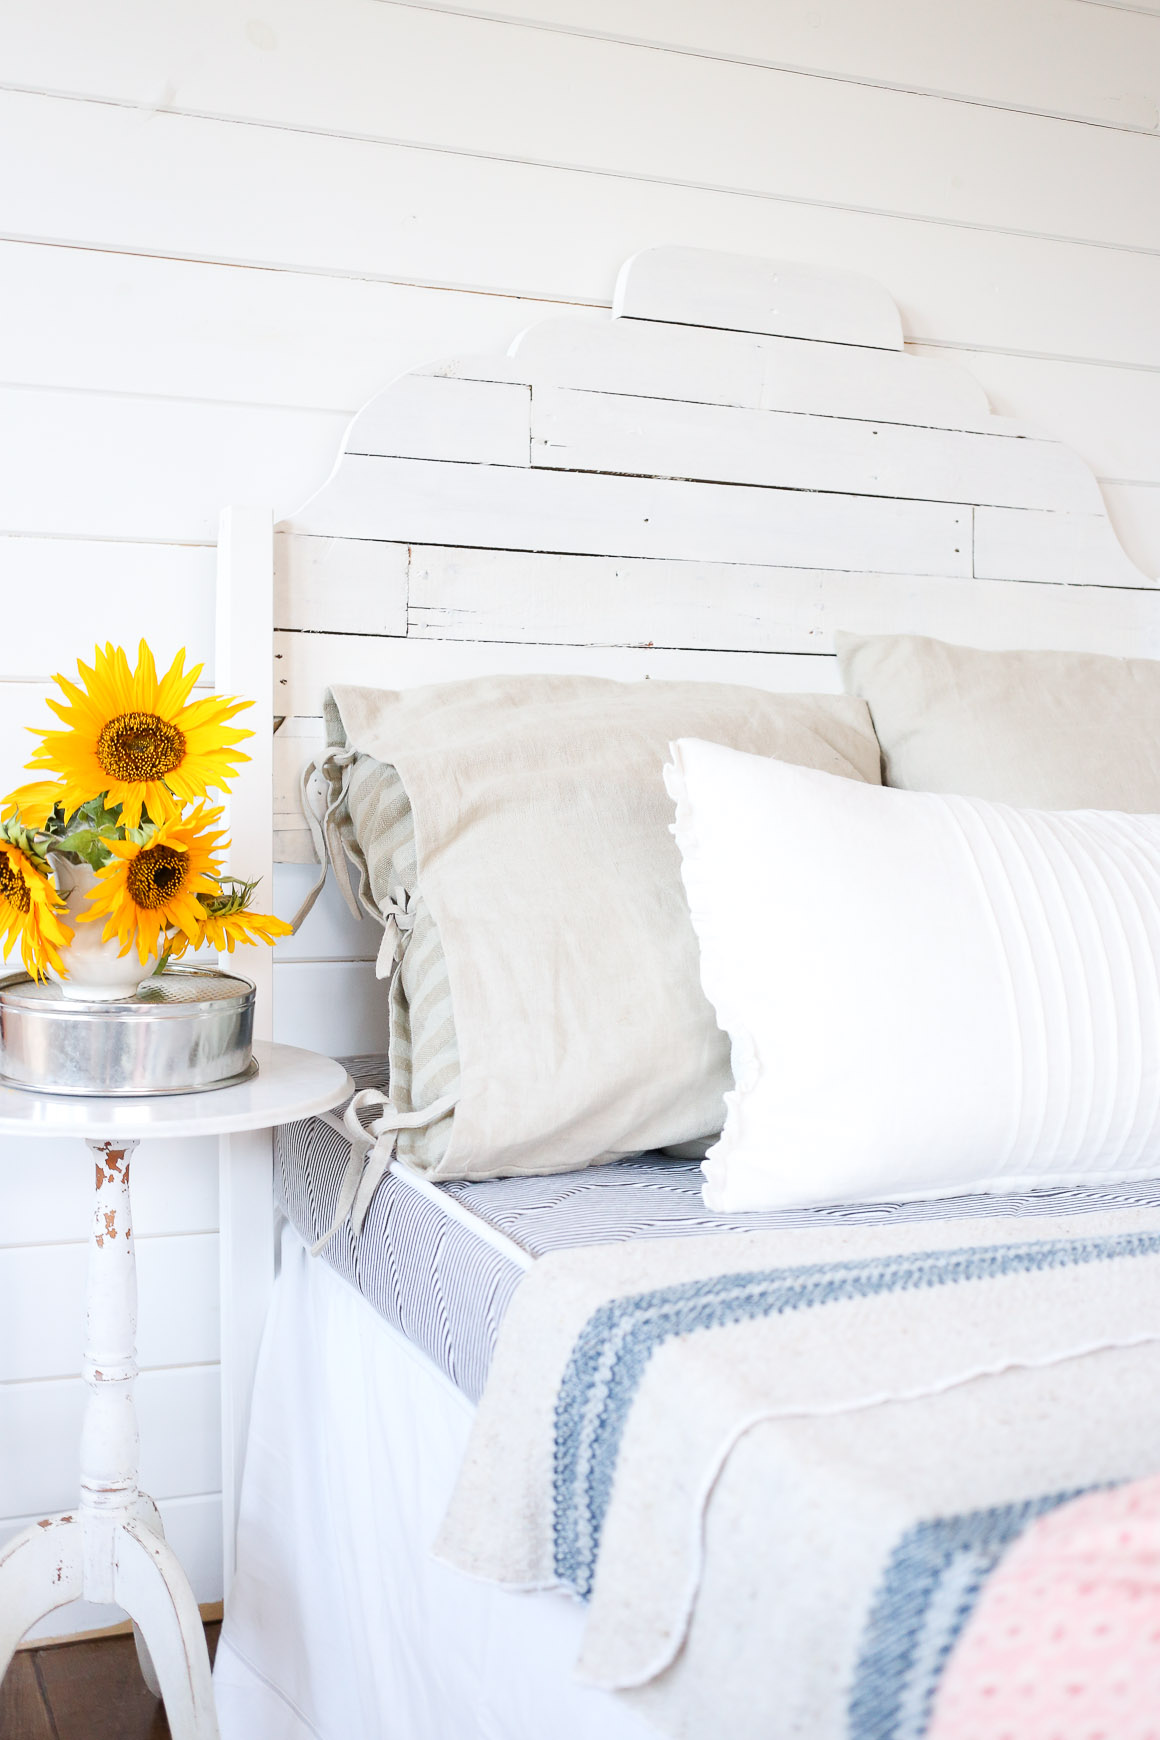 Joanna Gaines inspired DIY Pallet Headboard Tutorial via Ashlea of This Mamas Dance